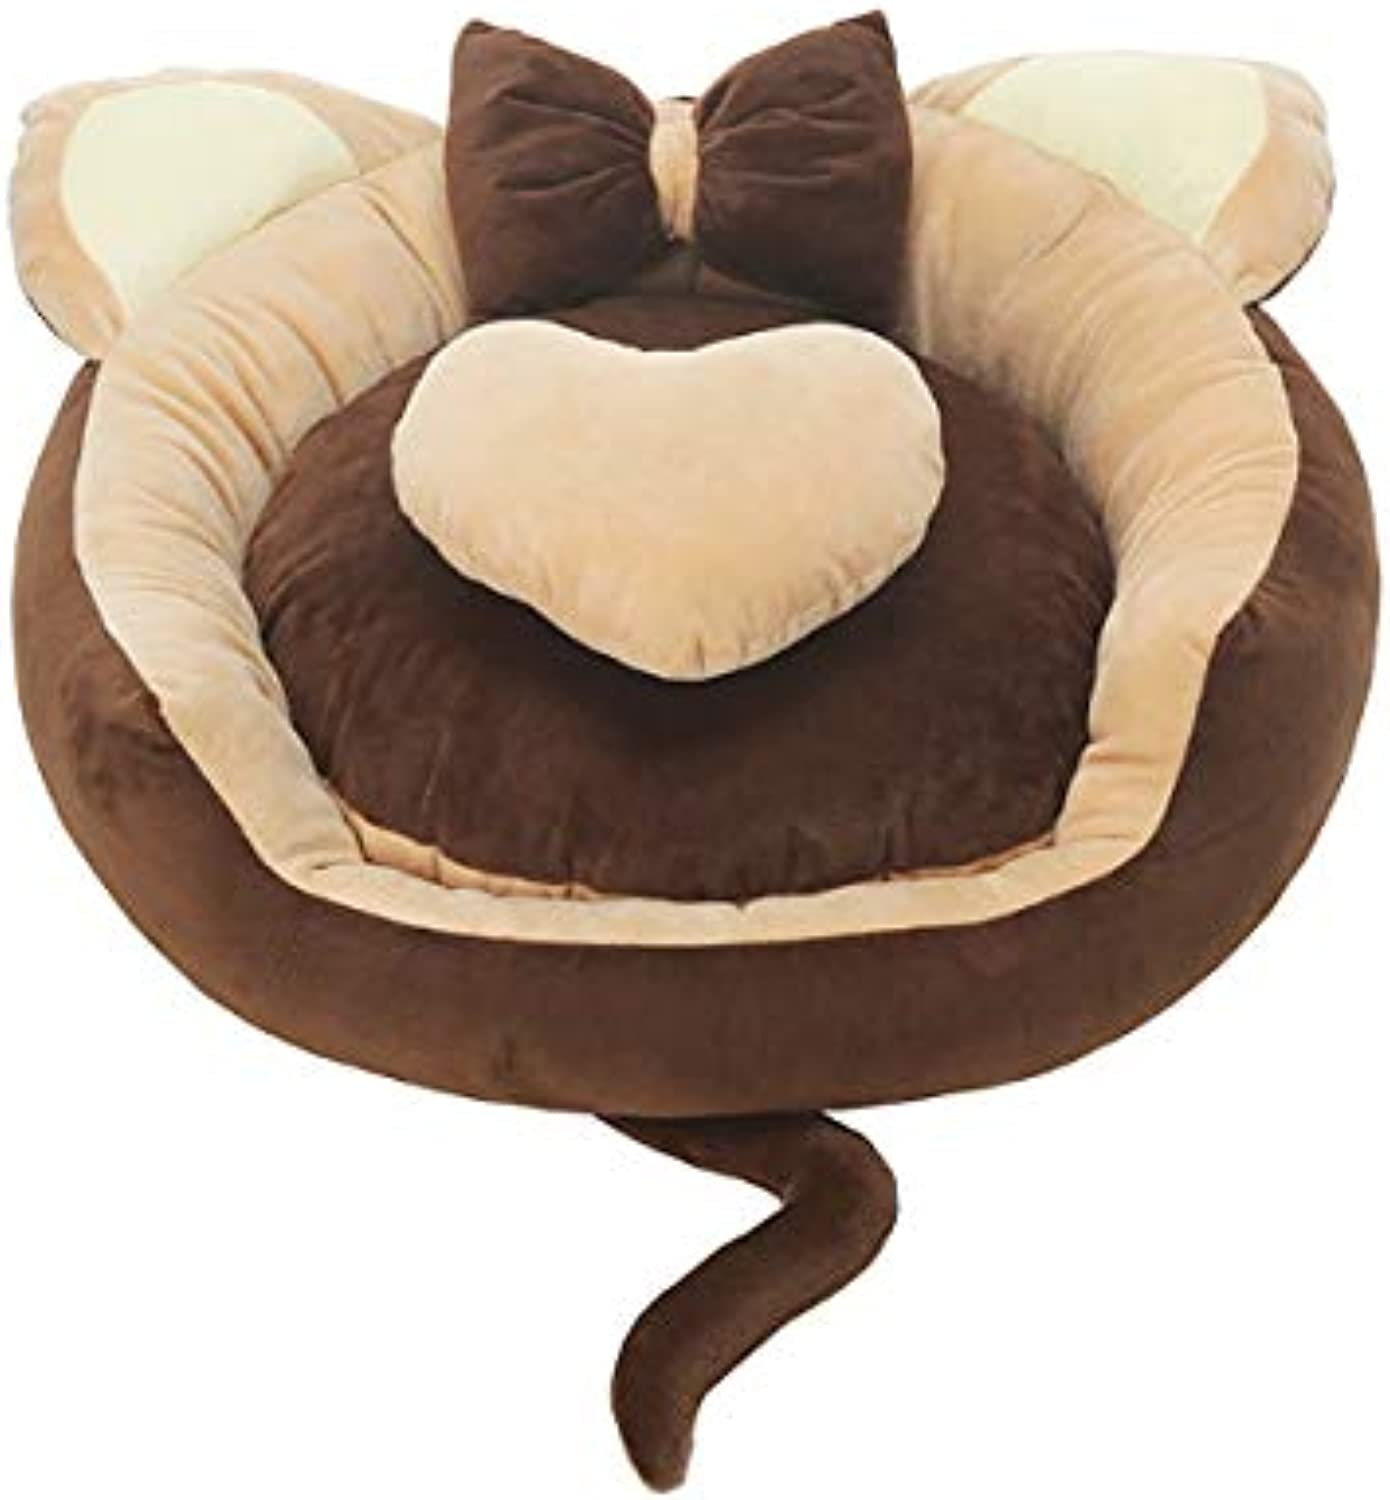 Gaobey SelfWarming Cat and Dog Bed Cushion for Medium large Dogs Short plush (XL Diameter78cm 30.7in, coffee)